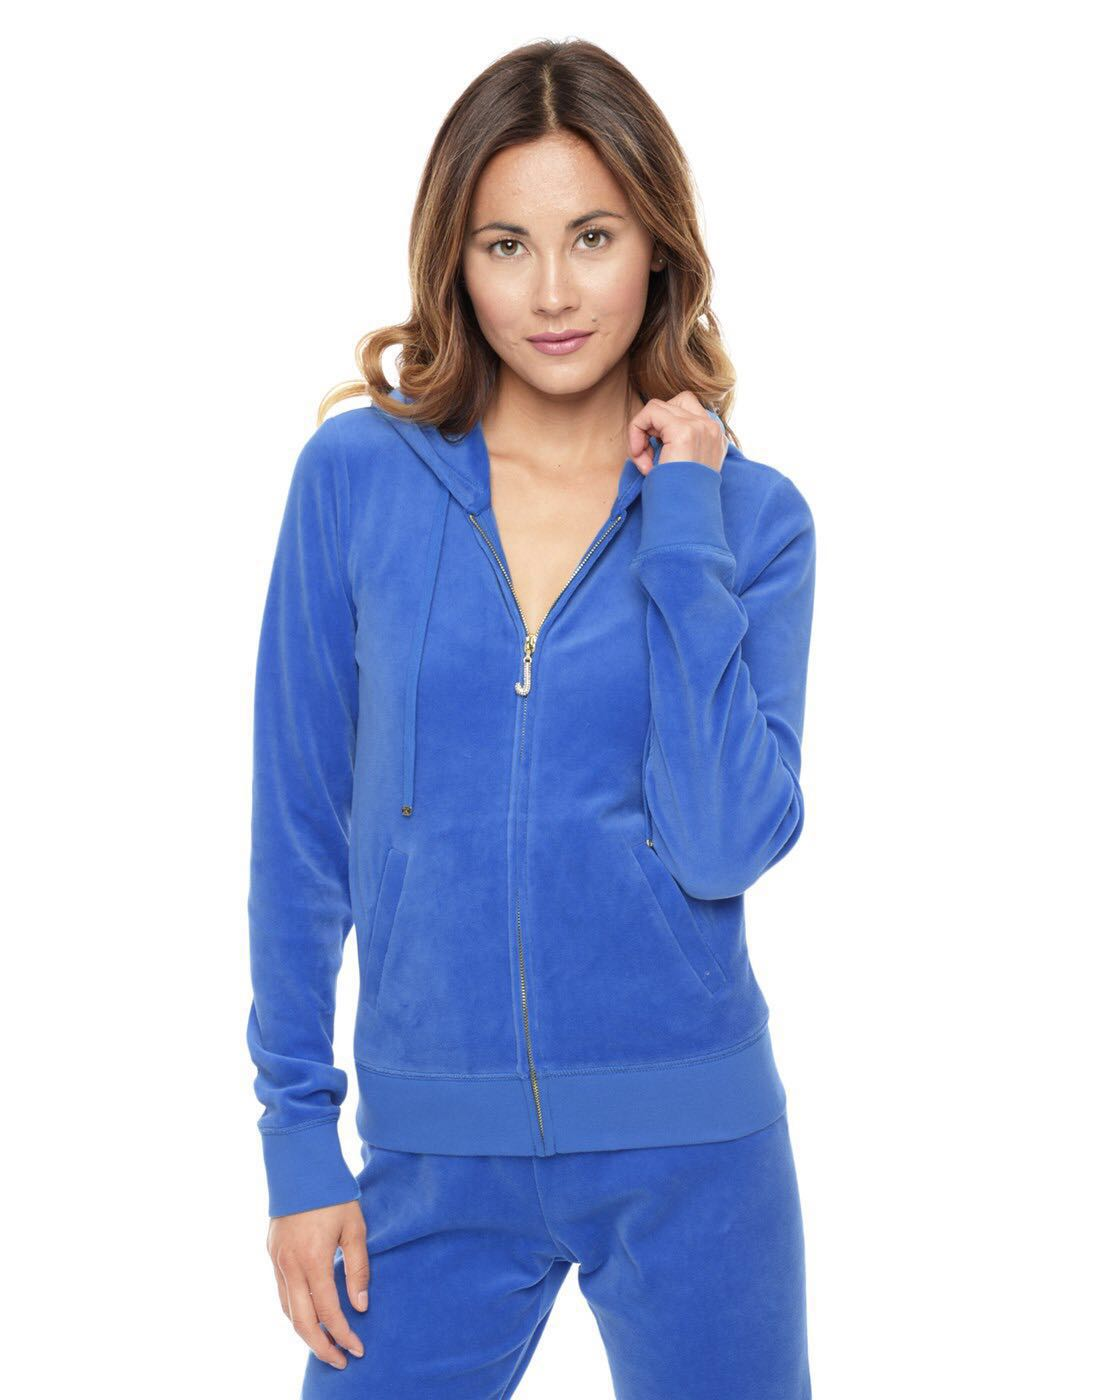 acfa2043 Authentic Juicy Couture J Bling Relaxed Velour Jacket with Hoodie ...